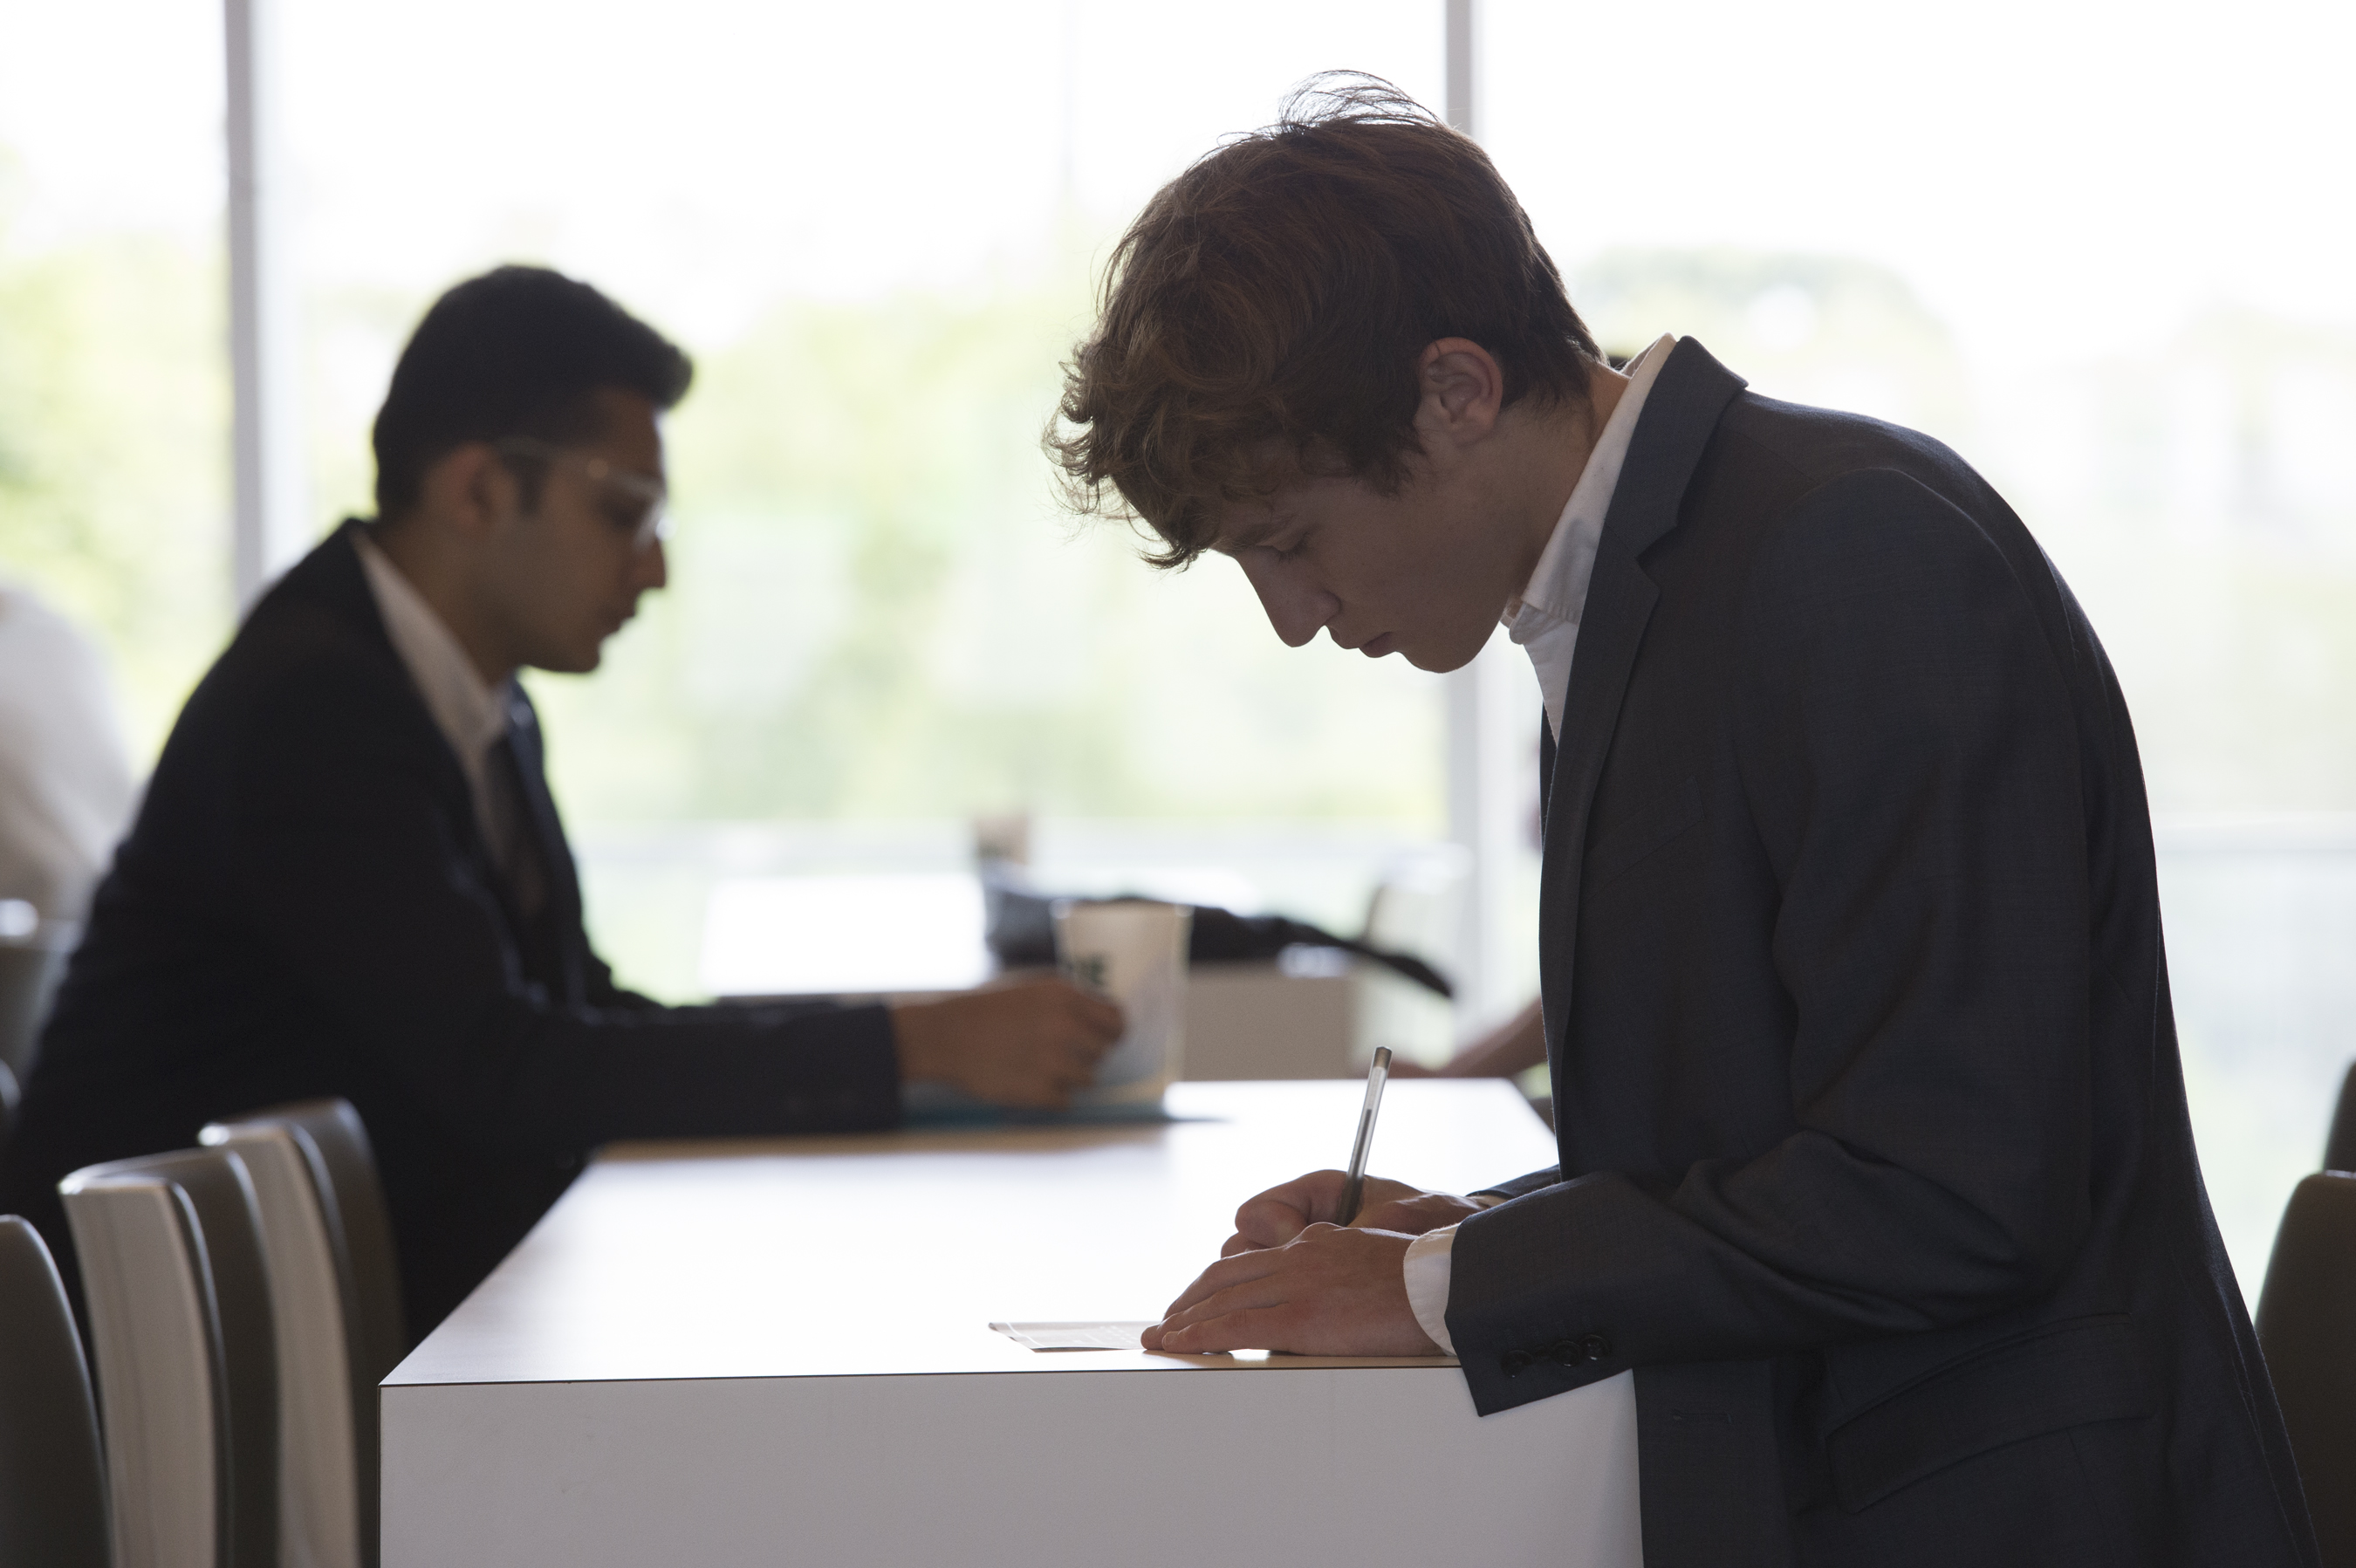 Two students in suits writing notes at a table.